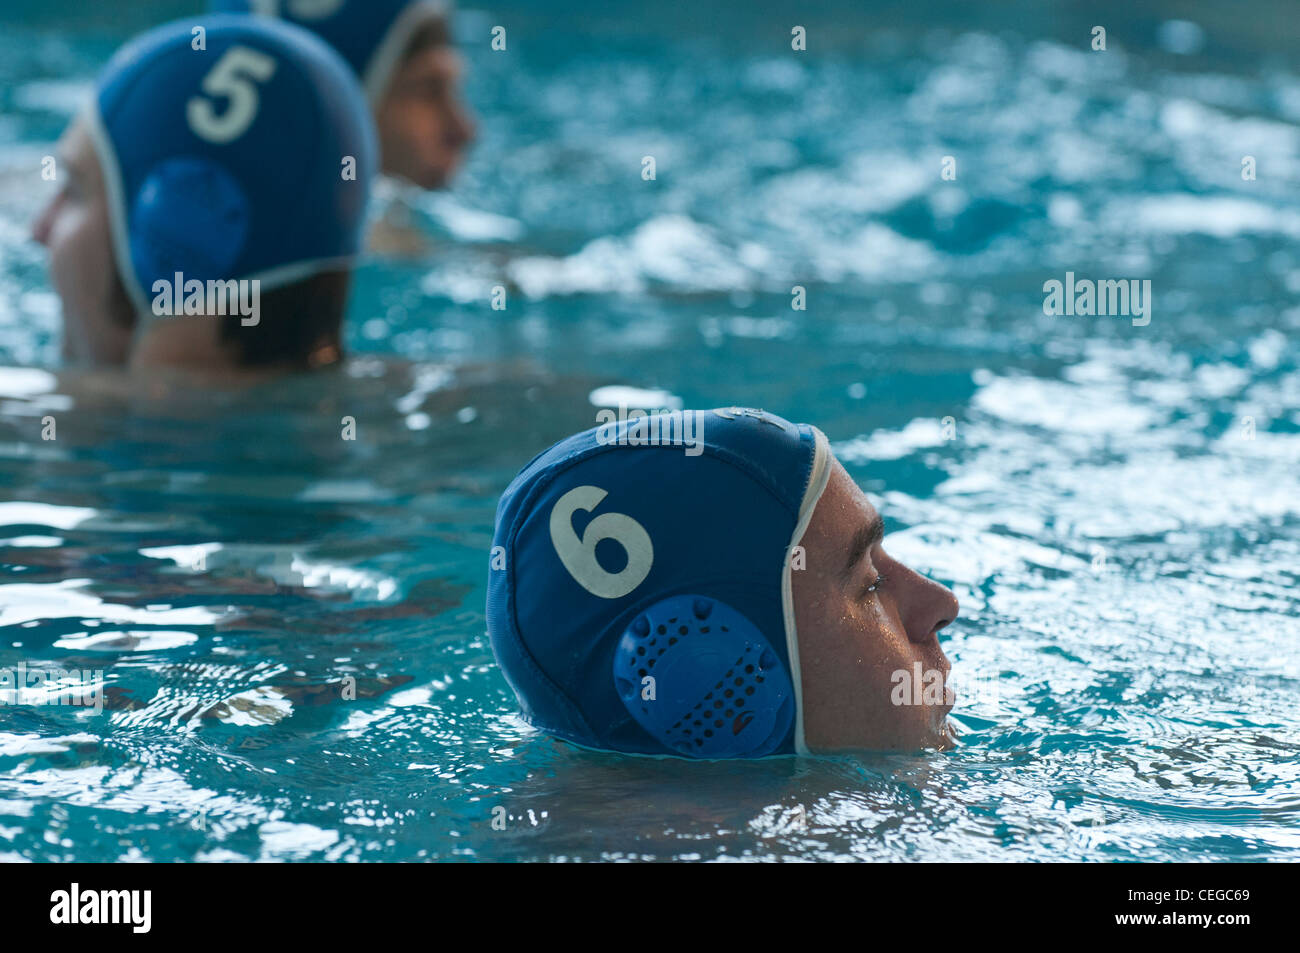 Amateur waterpolo match at the local swimming pool - Stock Image